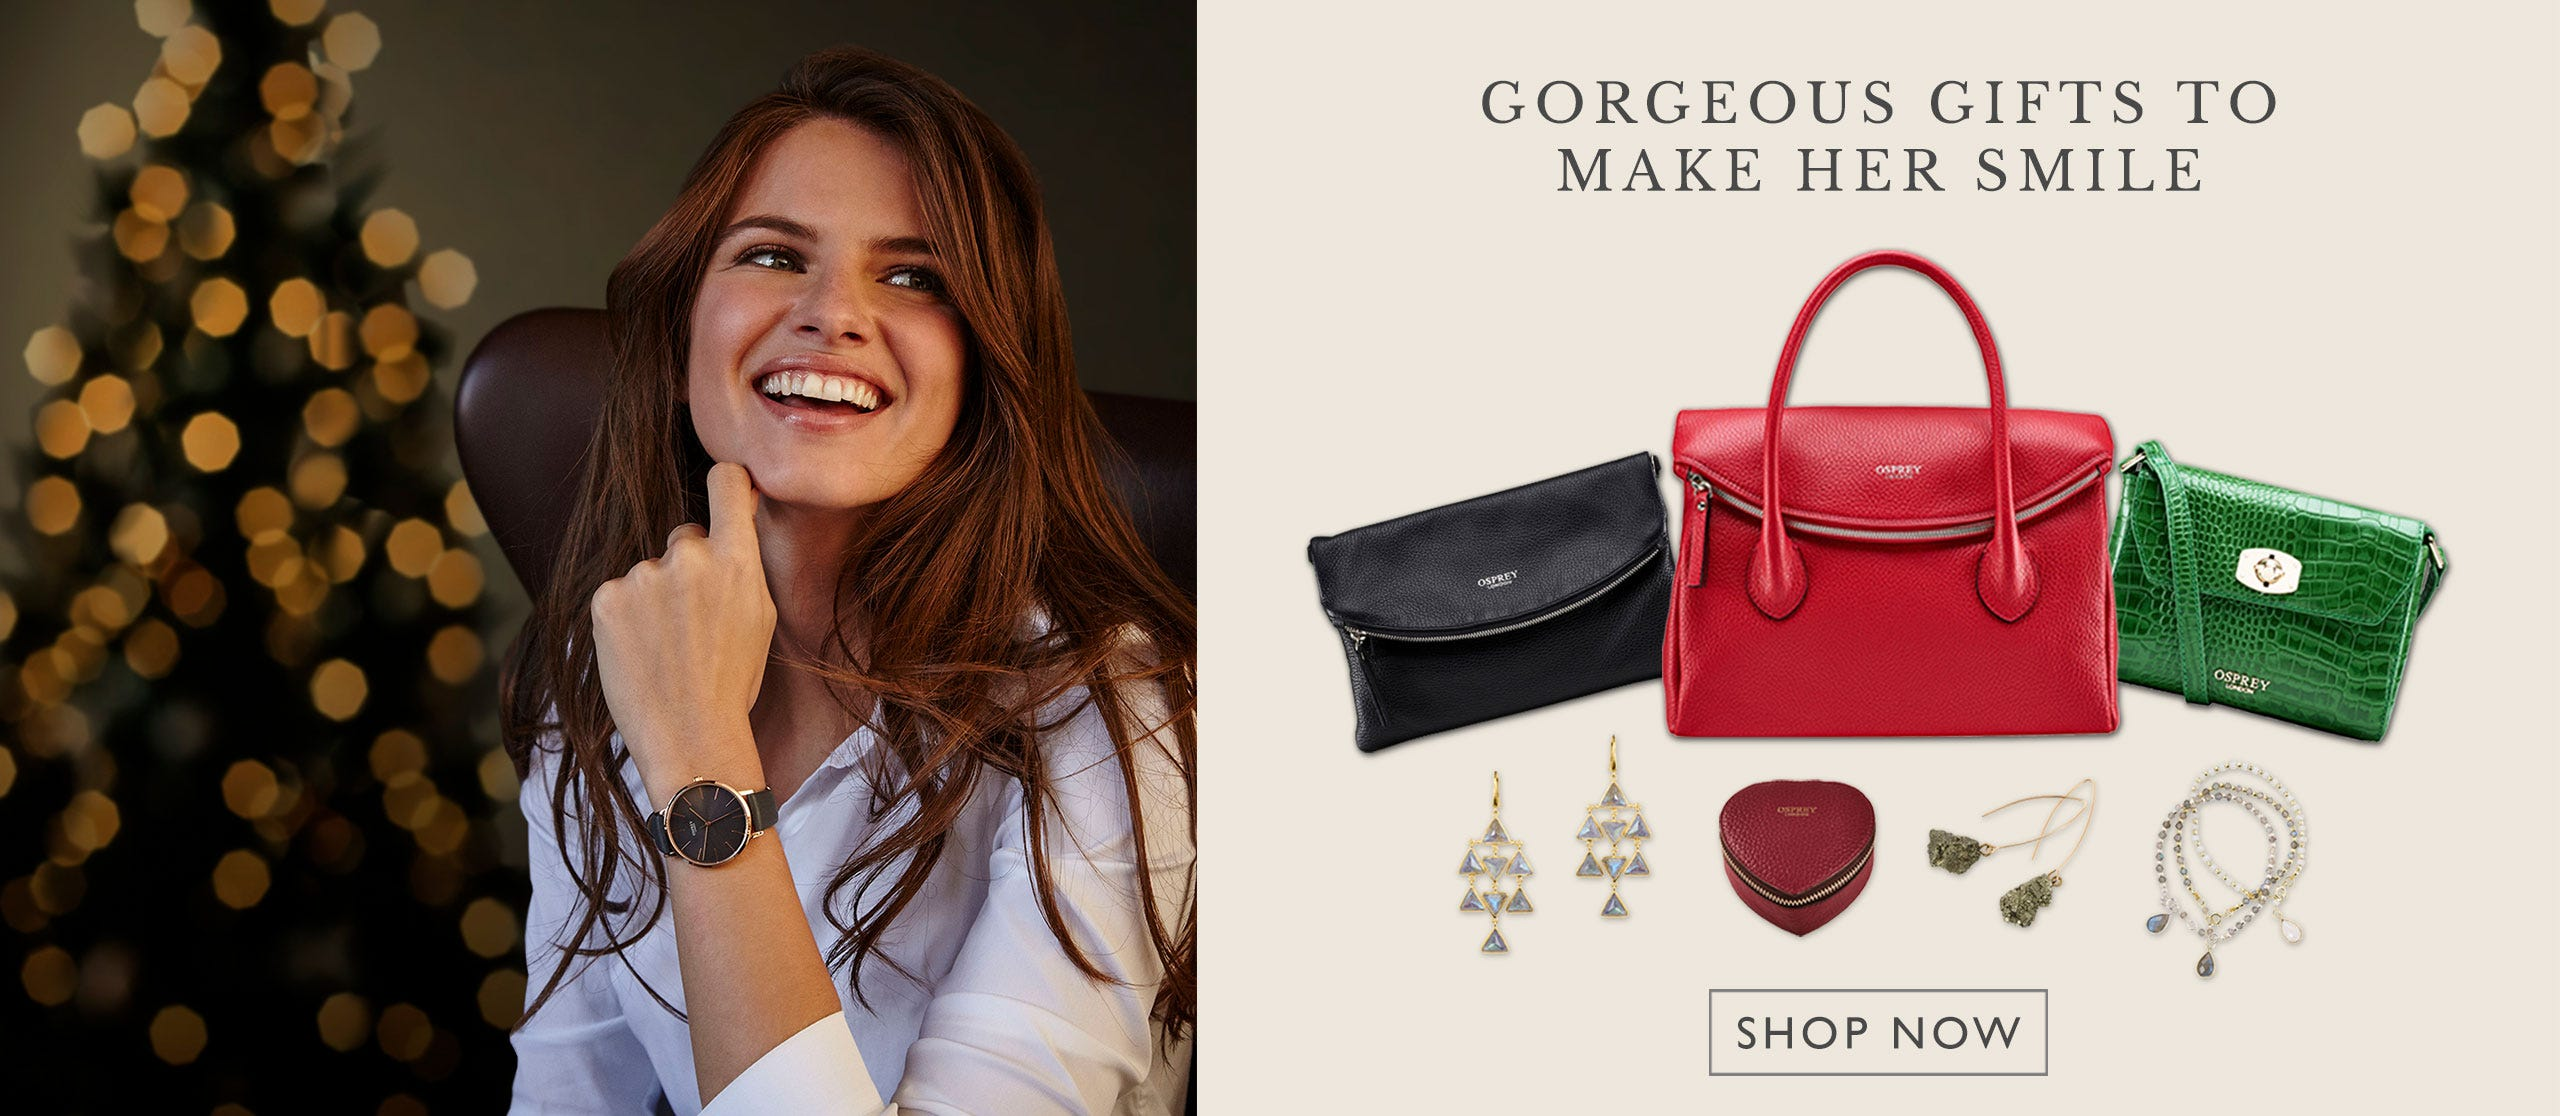 OSPREY LONDON | GORGEOUS GIFTS TO MAKE HER SMILE